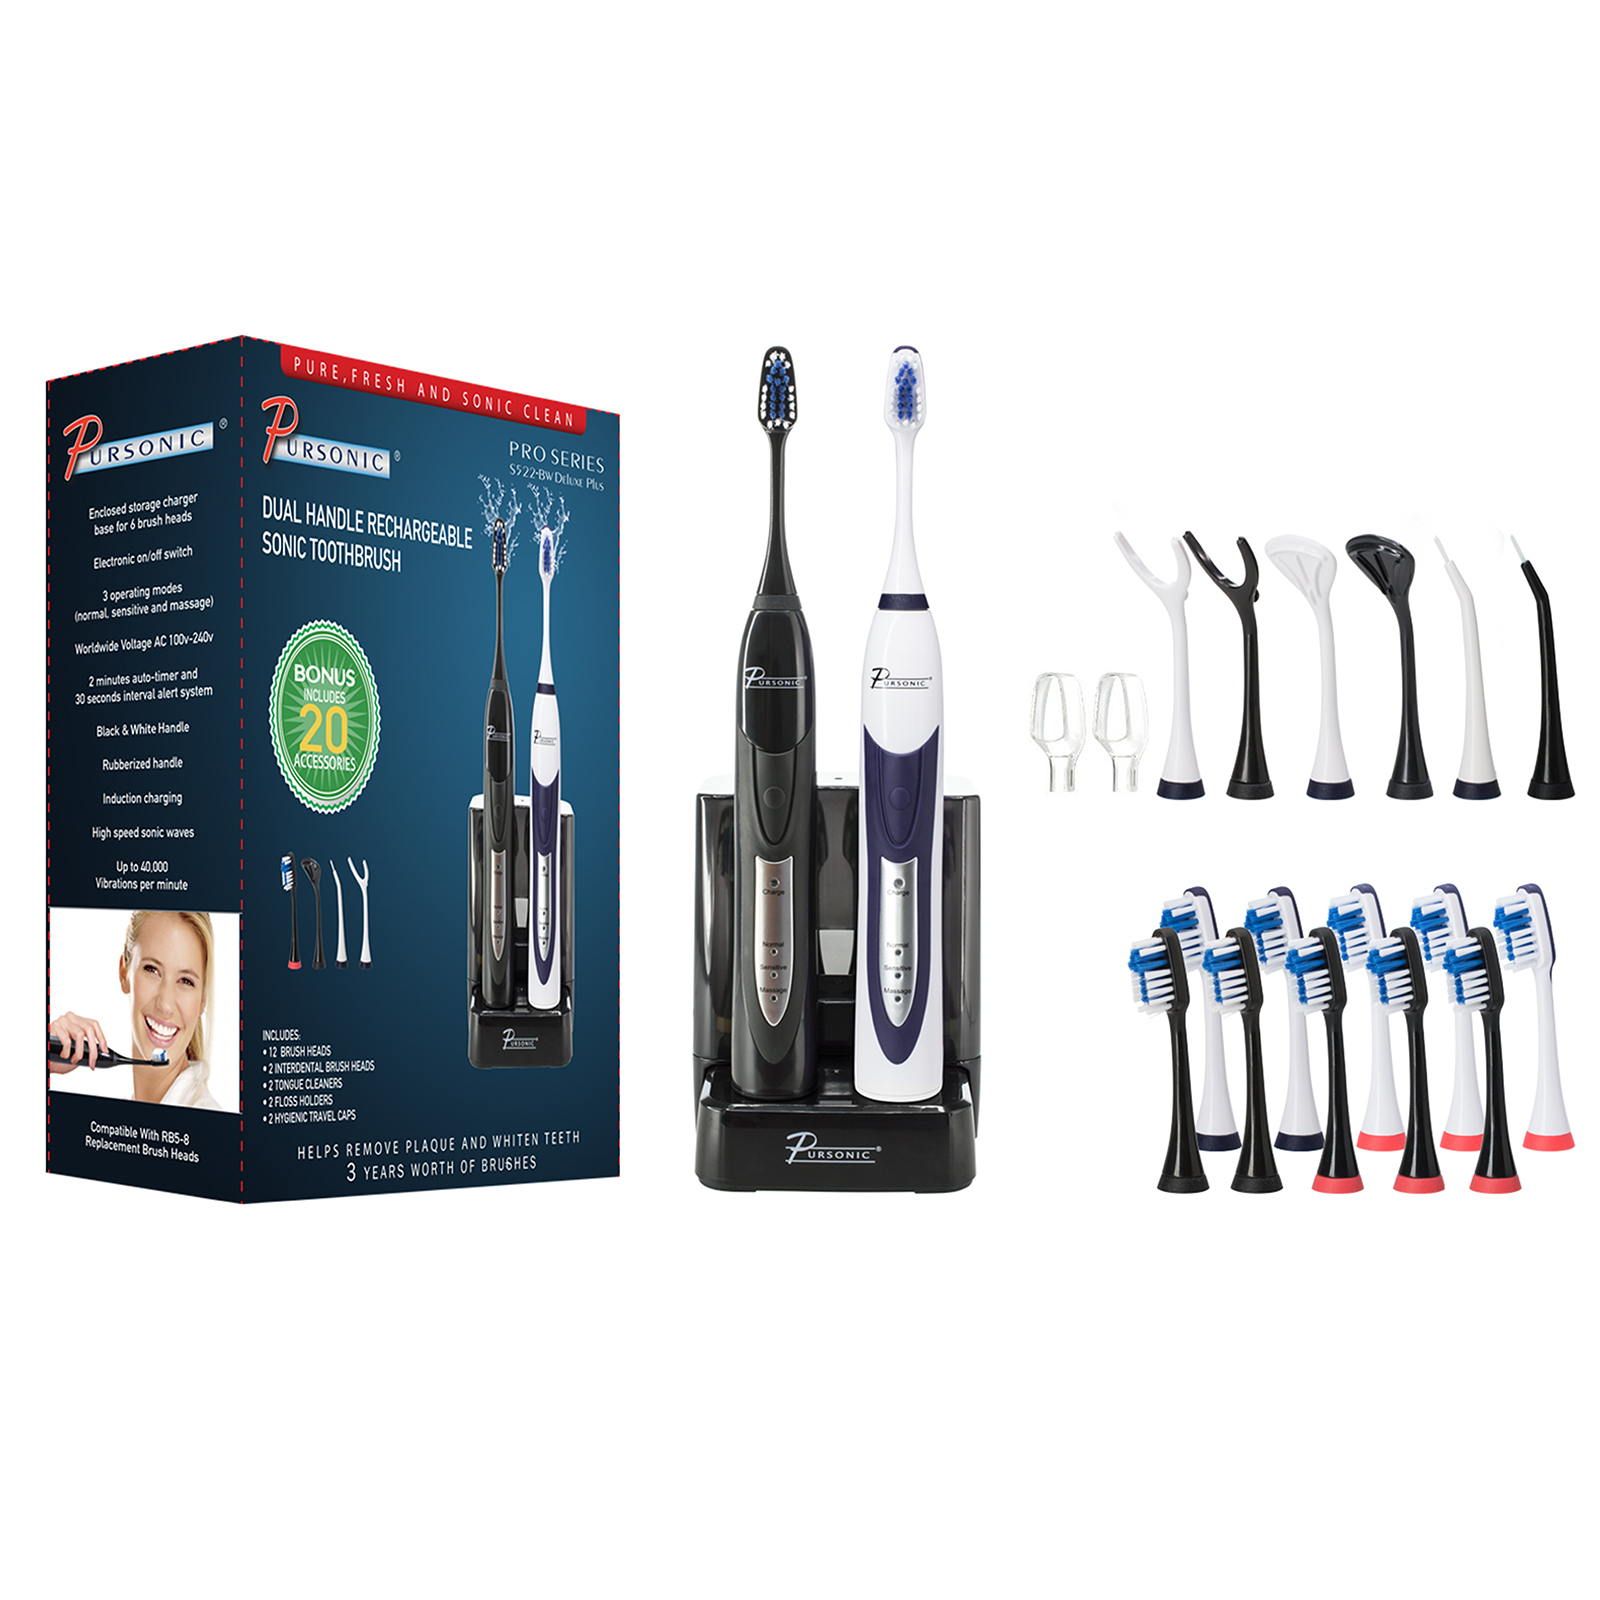 Pursonic Dual Handle Ultra High Powered Sonic Electric Toothbrush with Dock, 12 Brush Heads & More!-Black and White